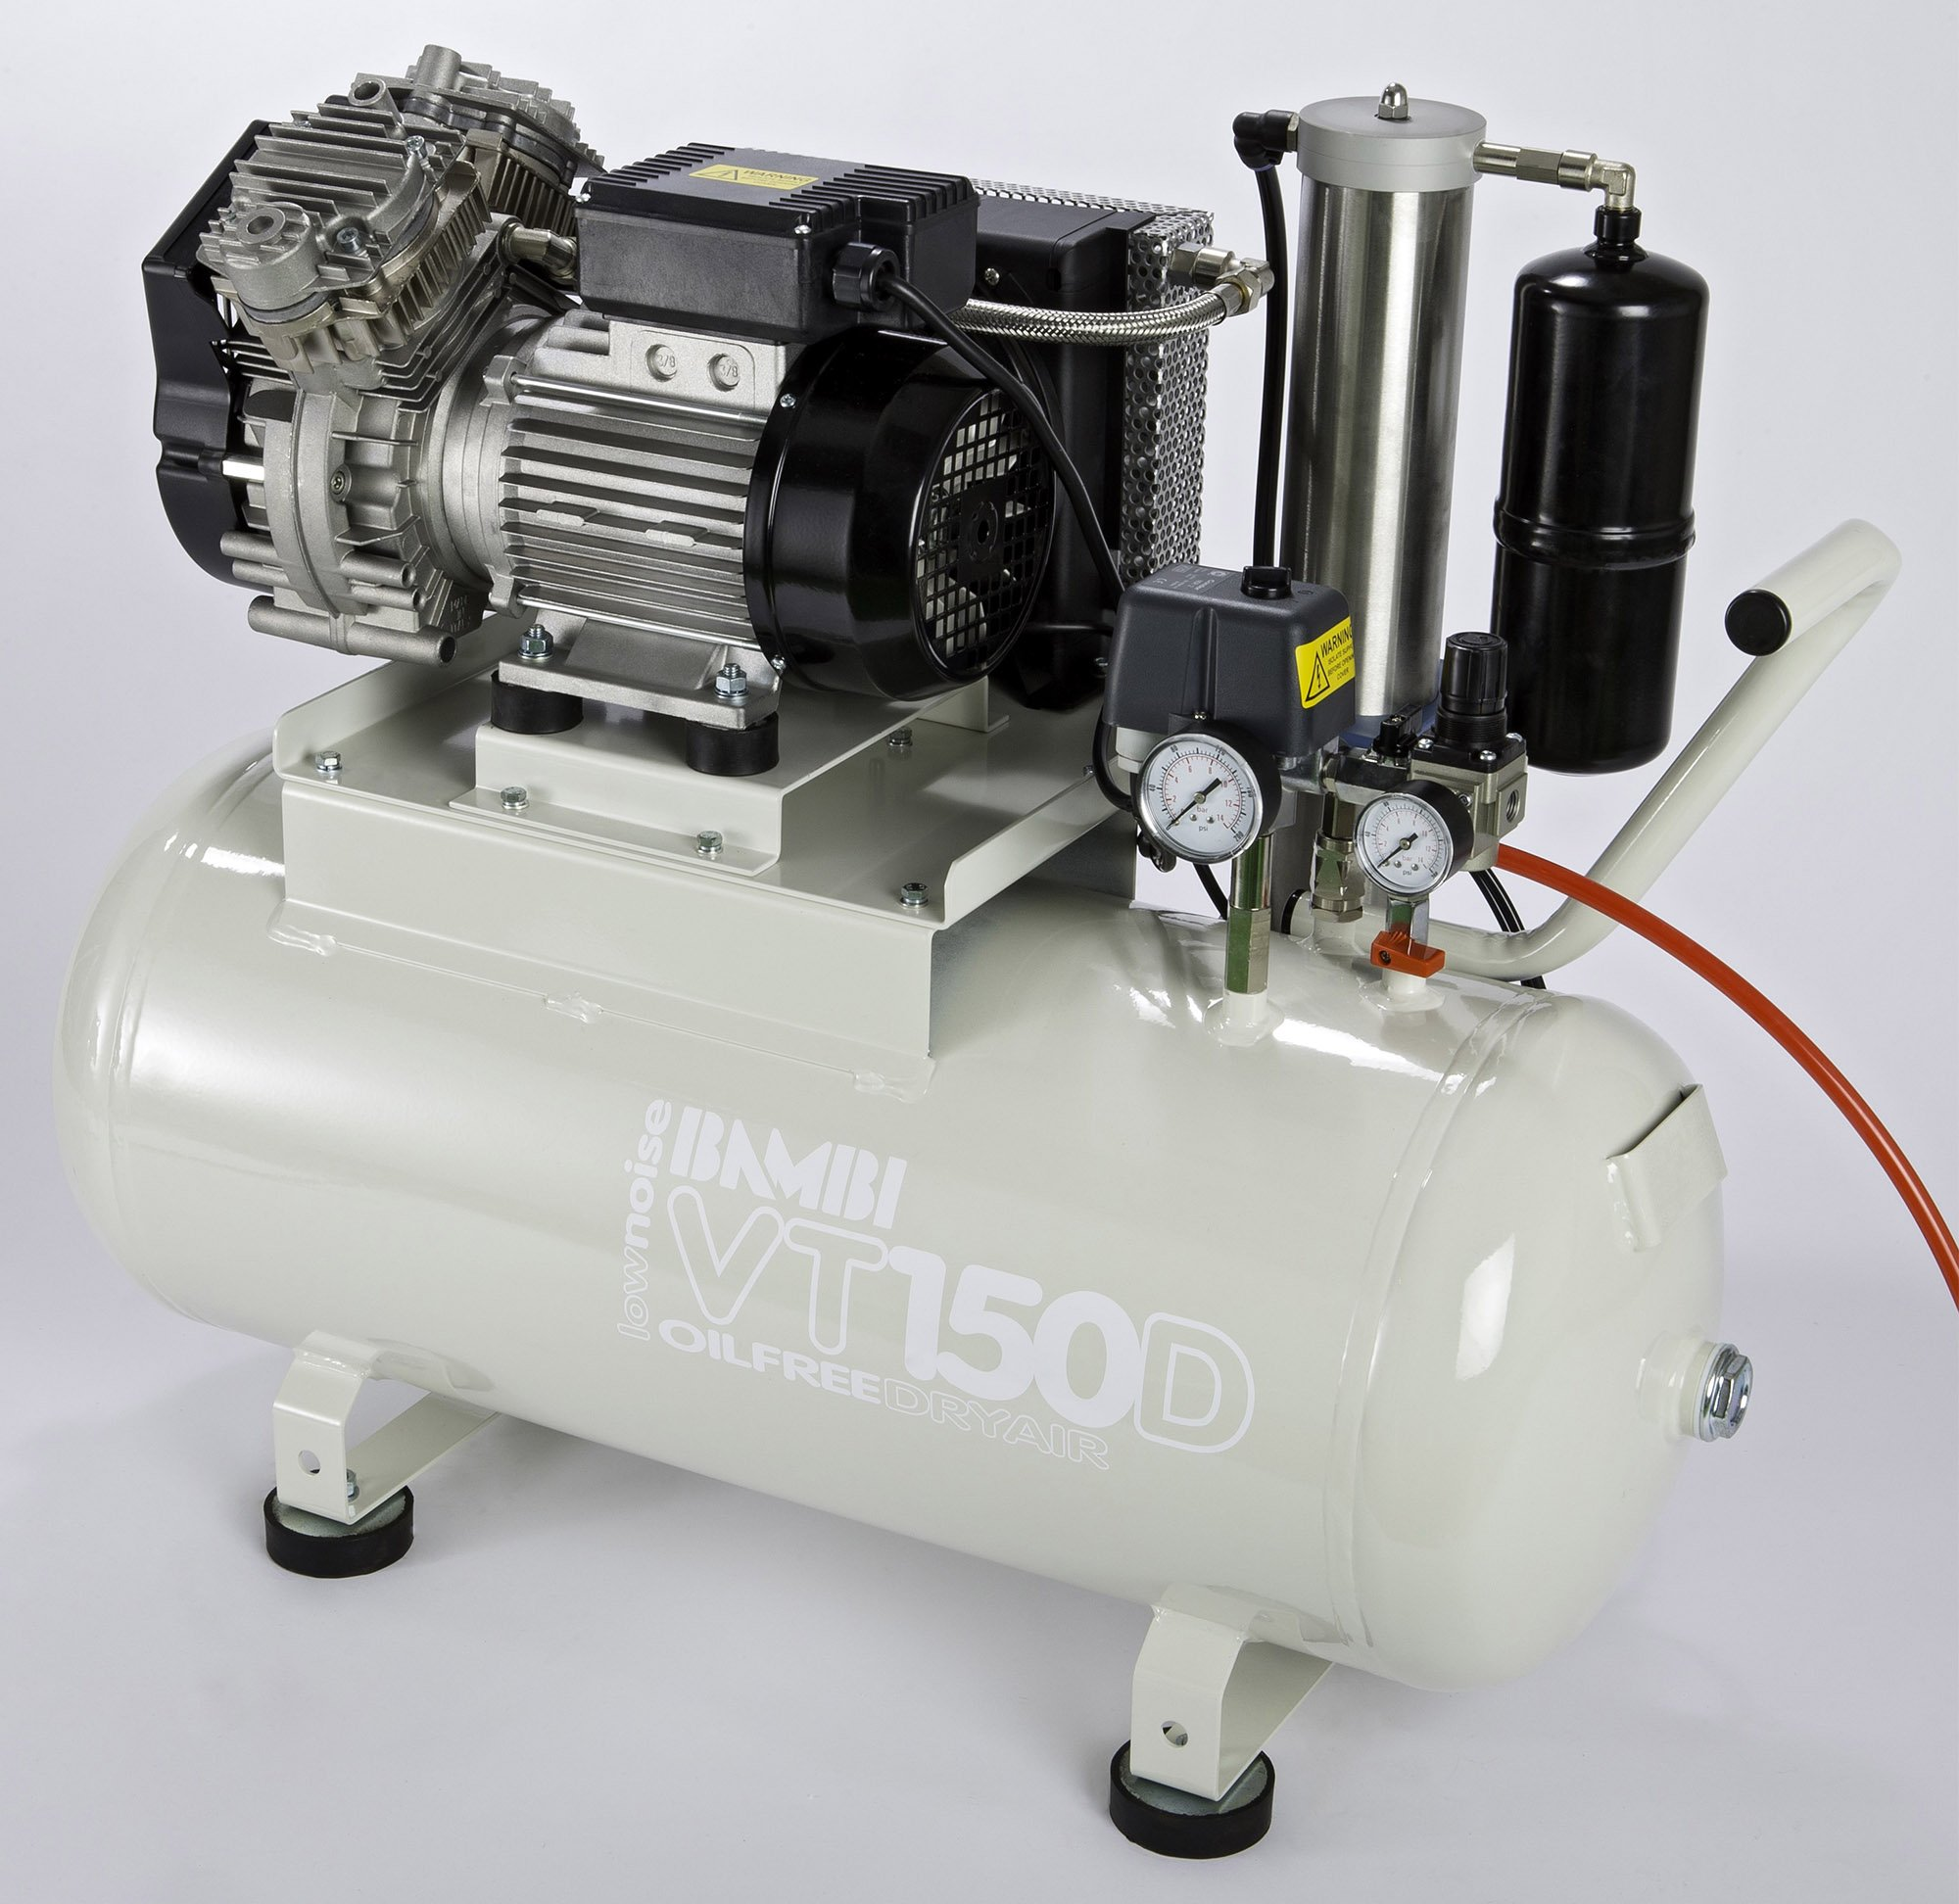 Midlands UK supplier of Bambi VTH150D air compressor